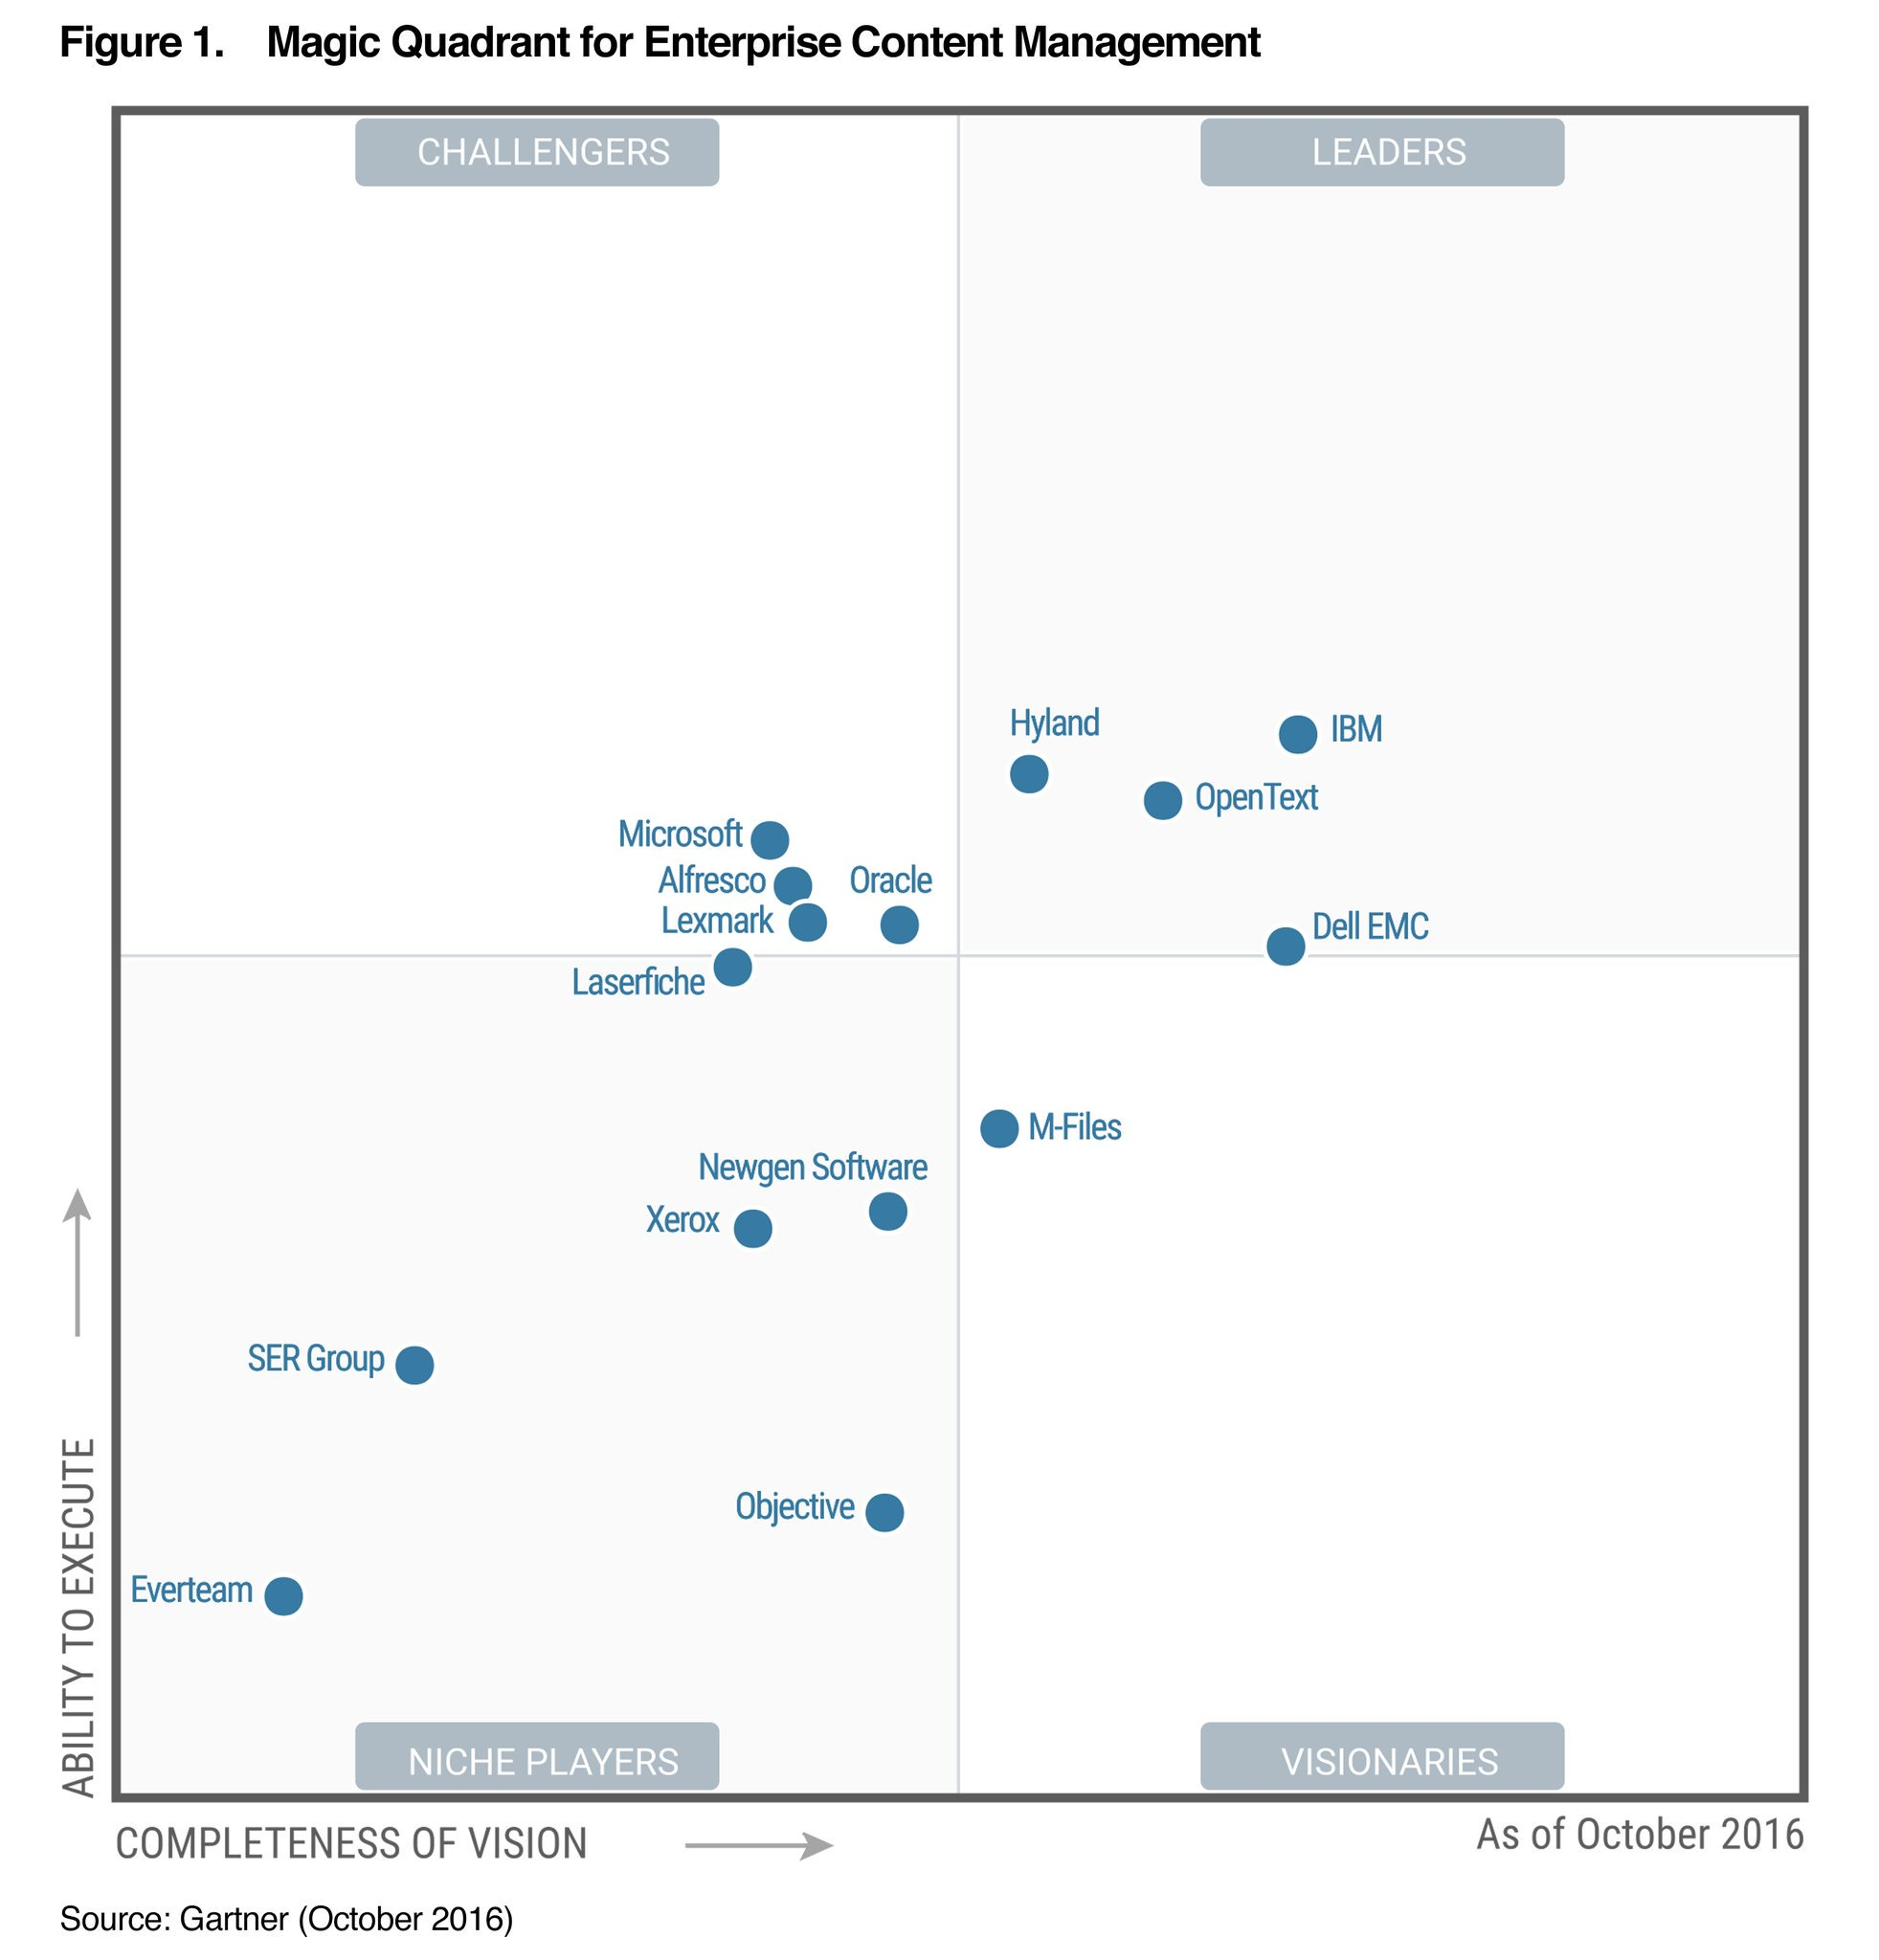 www.project-consult.de/files/Gartner Magic Quadrant ECM 2016.pdf